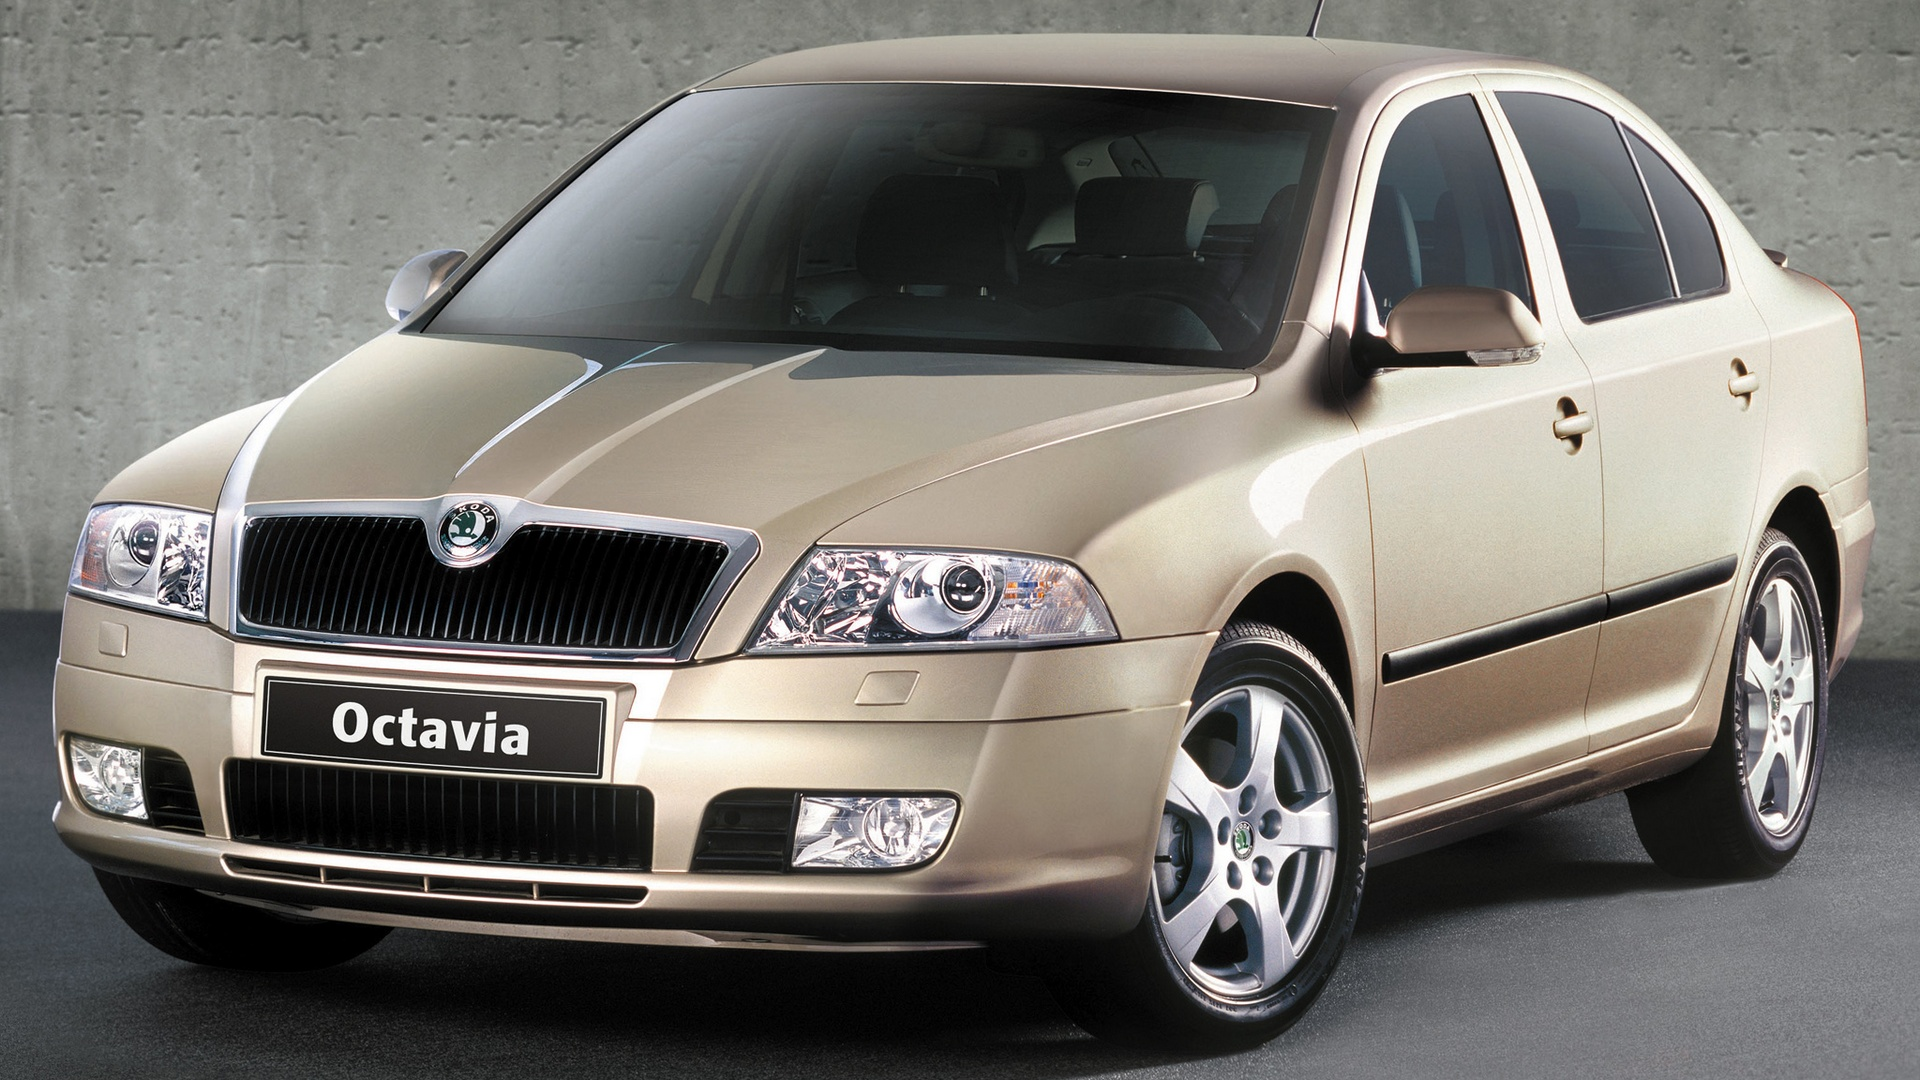 skoda octavia ii sedan 2004 08. Black Bedroom Furniture Sets. Home Design Ideas